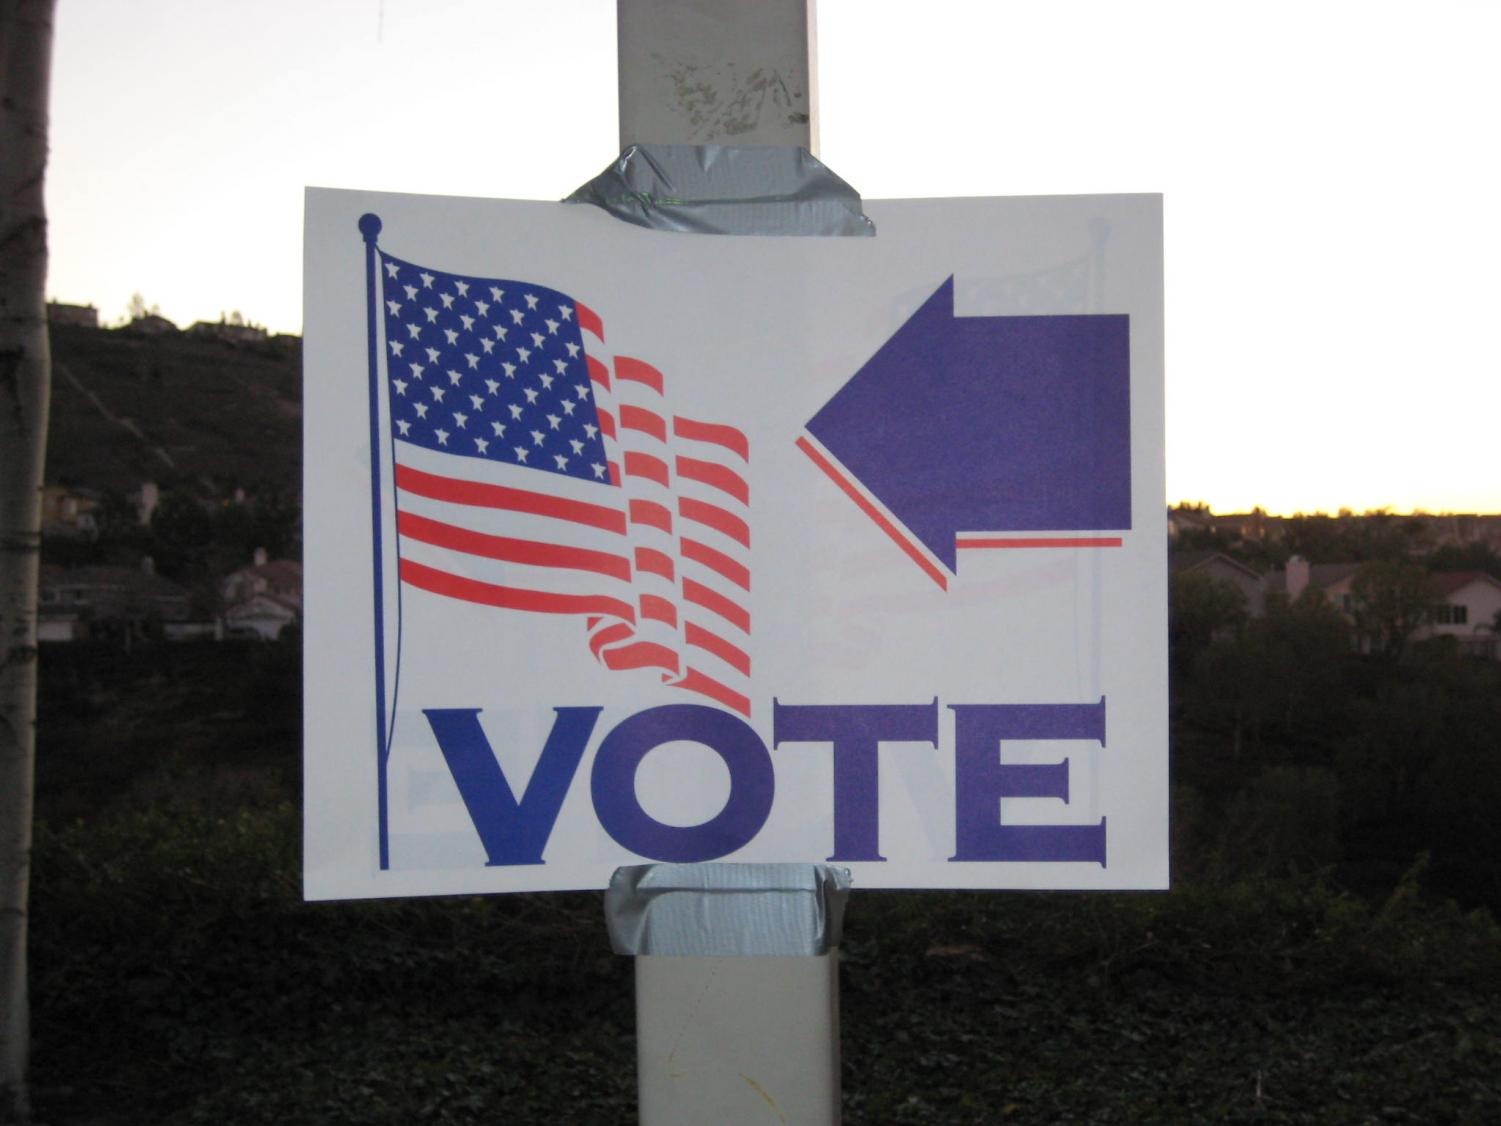 A vote sign pointing the direction to the voting booth